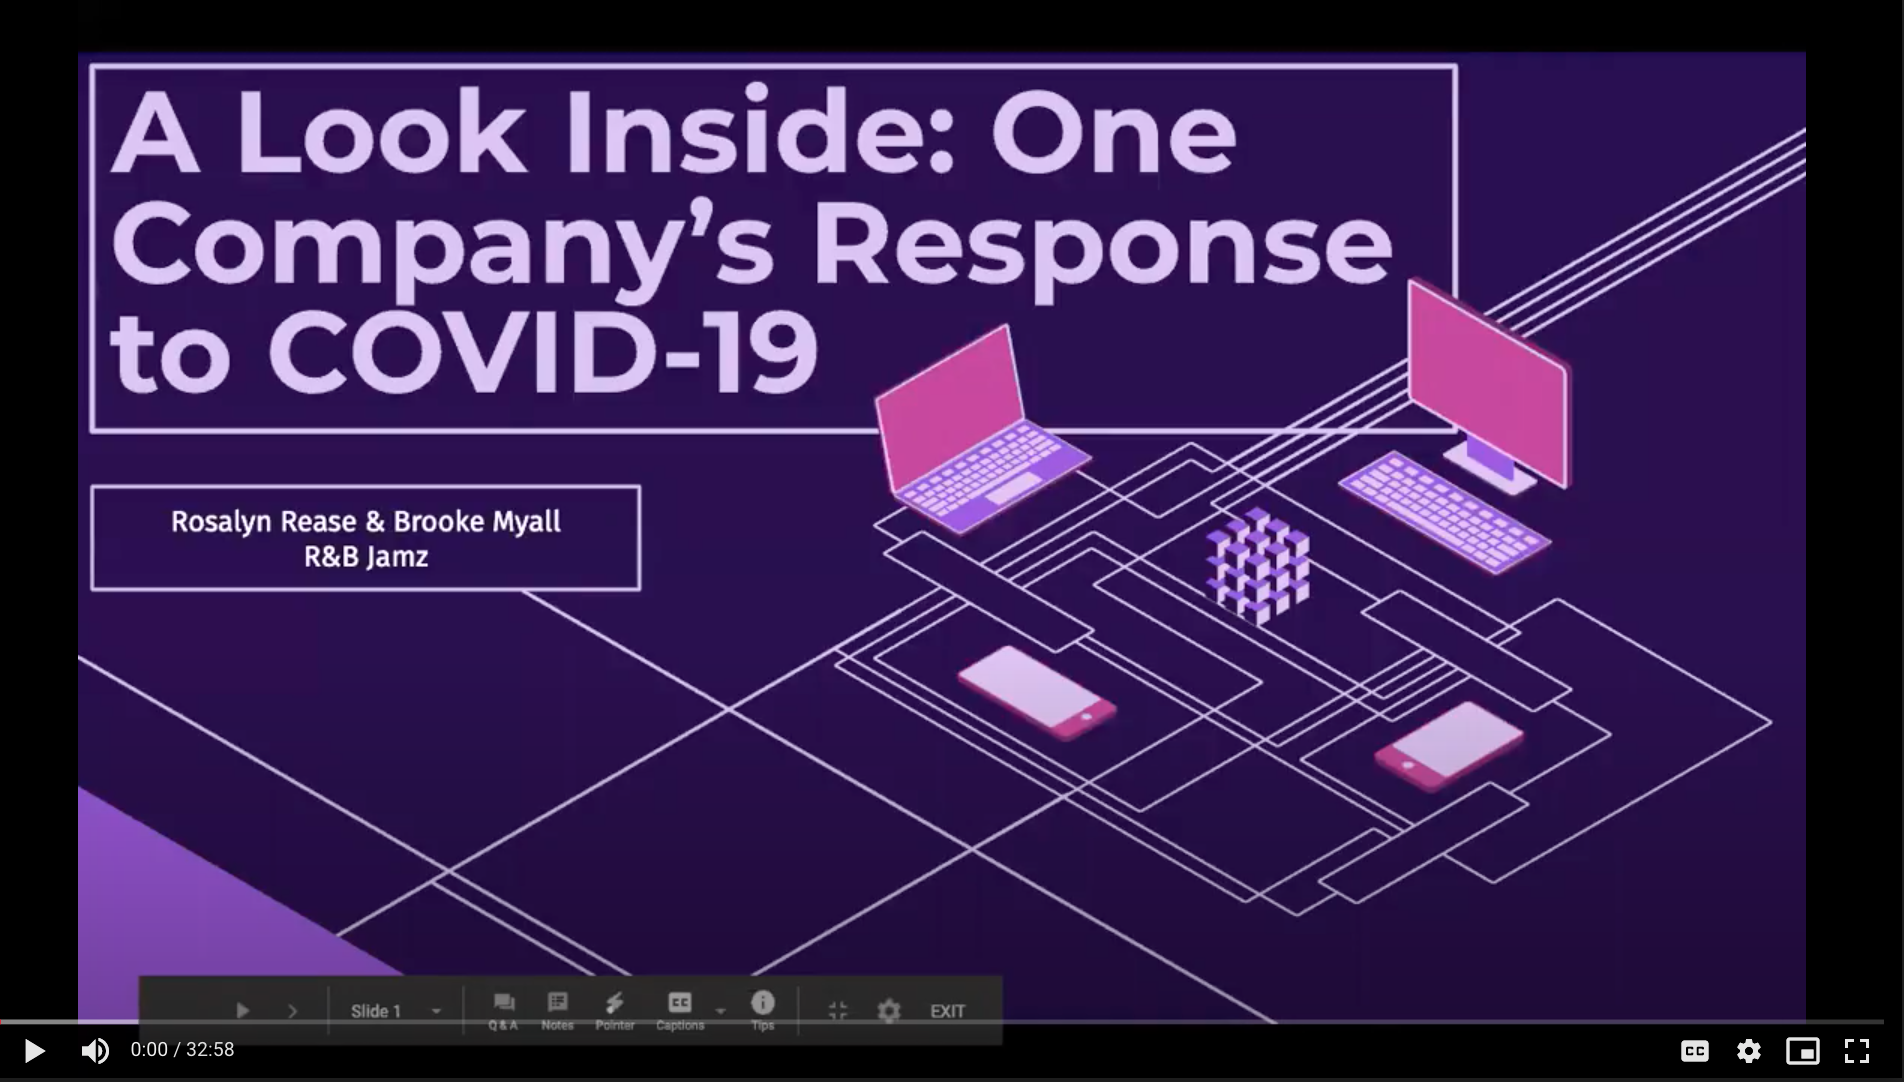 A Look Inside: One Company's Response to COVID-19